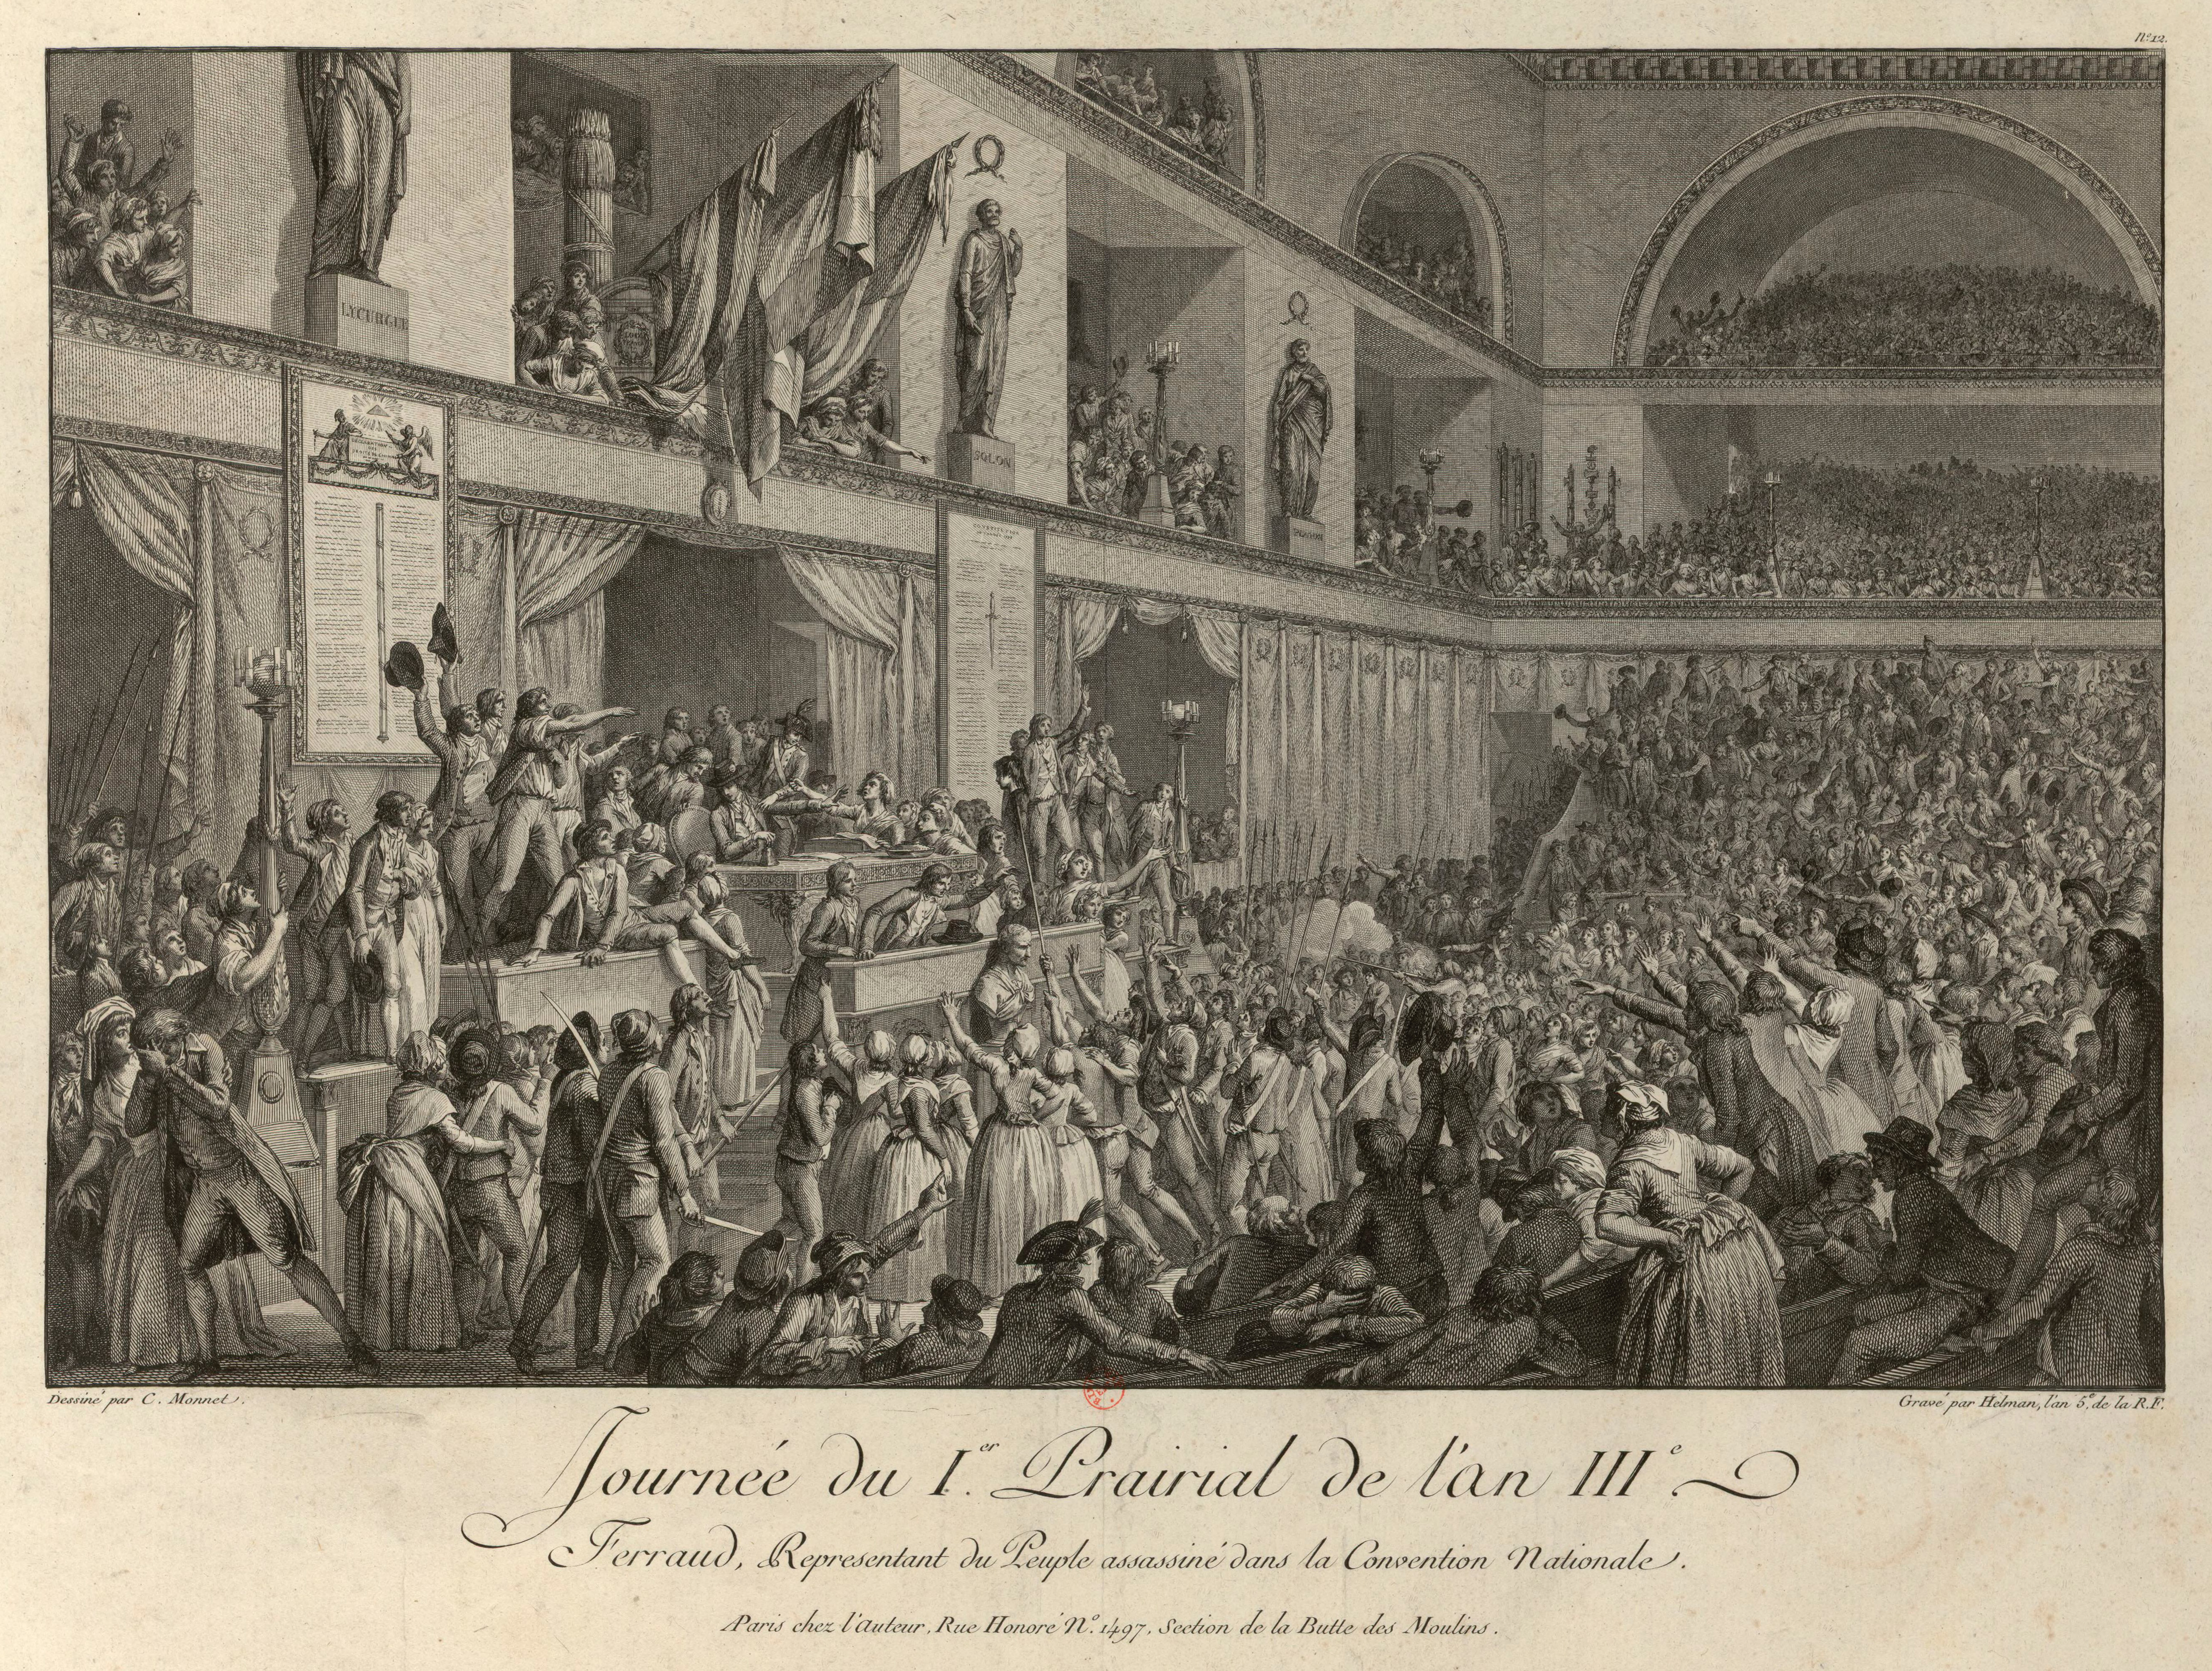 a historical background of the french decree of prairial in the 1790s This course provides basic historical background to  background on the french revolution,  early 1790s was not so much the french revolution as.